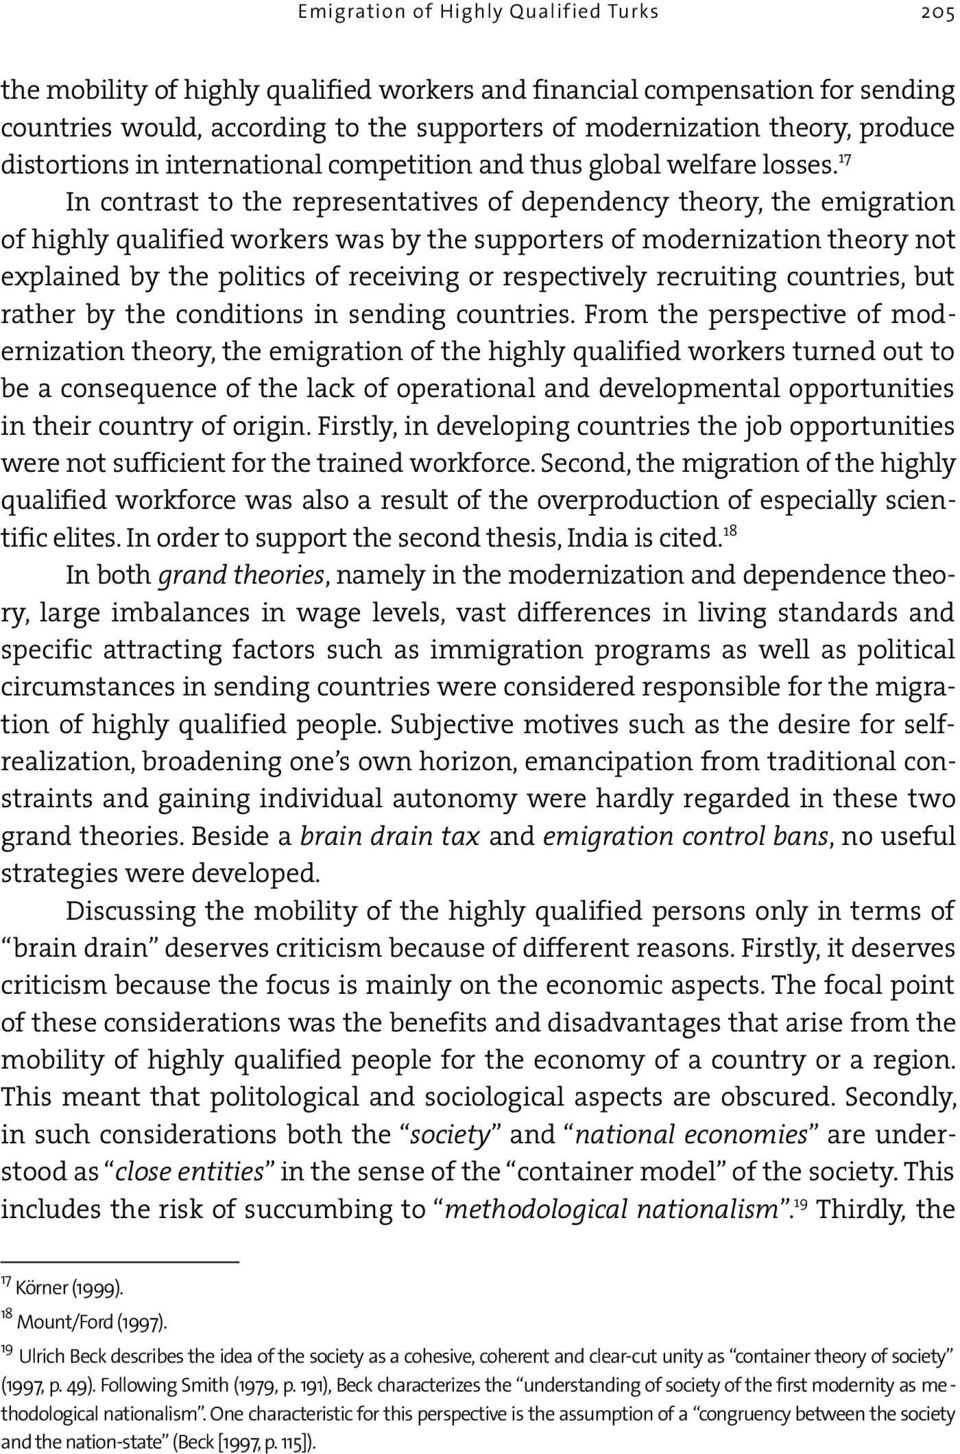 17 In contrast to the representatives of dependency theory, the emigration of highly qualified workers was by the supporters of modernization theory not explained by the politics of receiving or